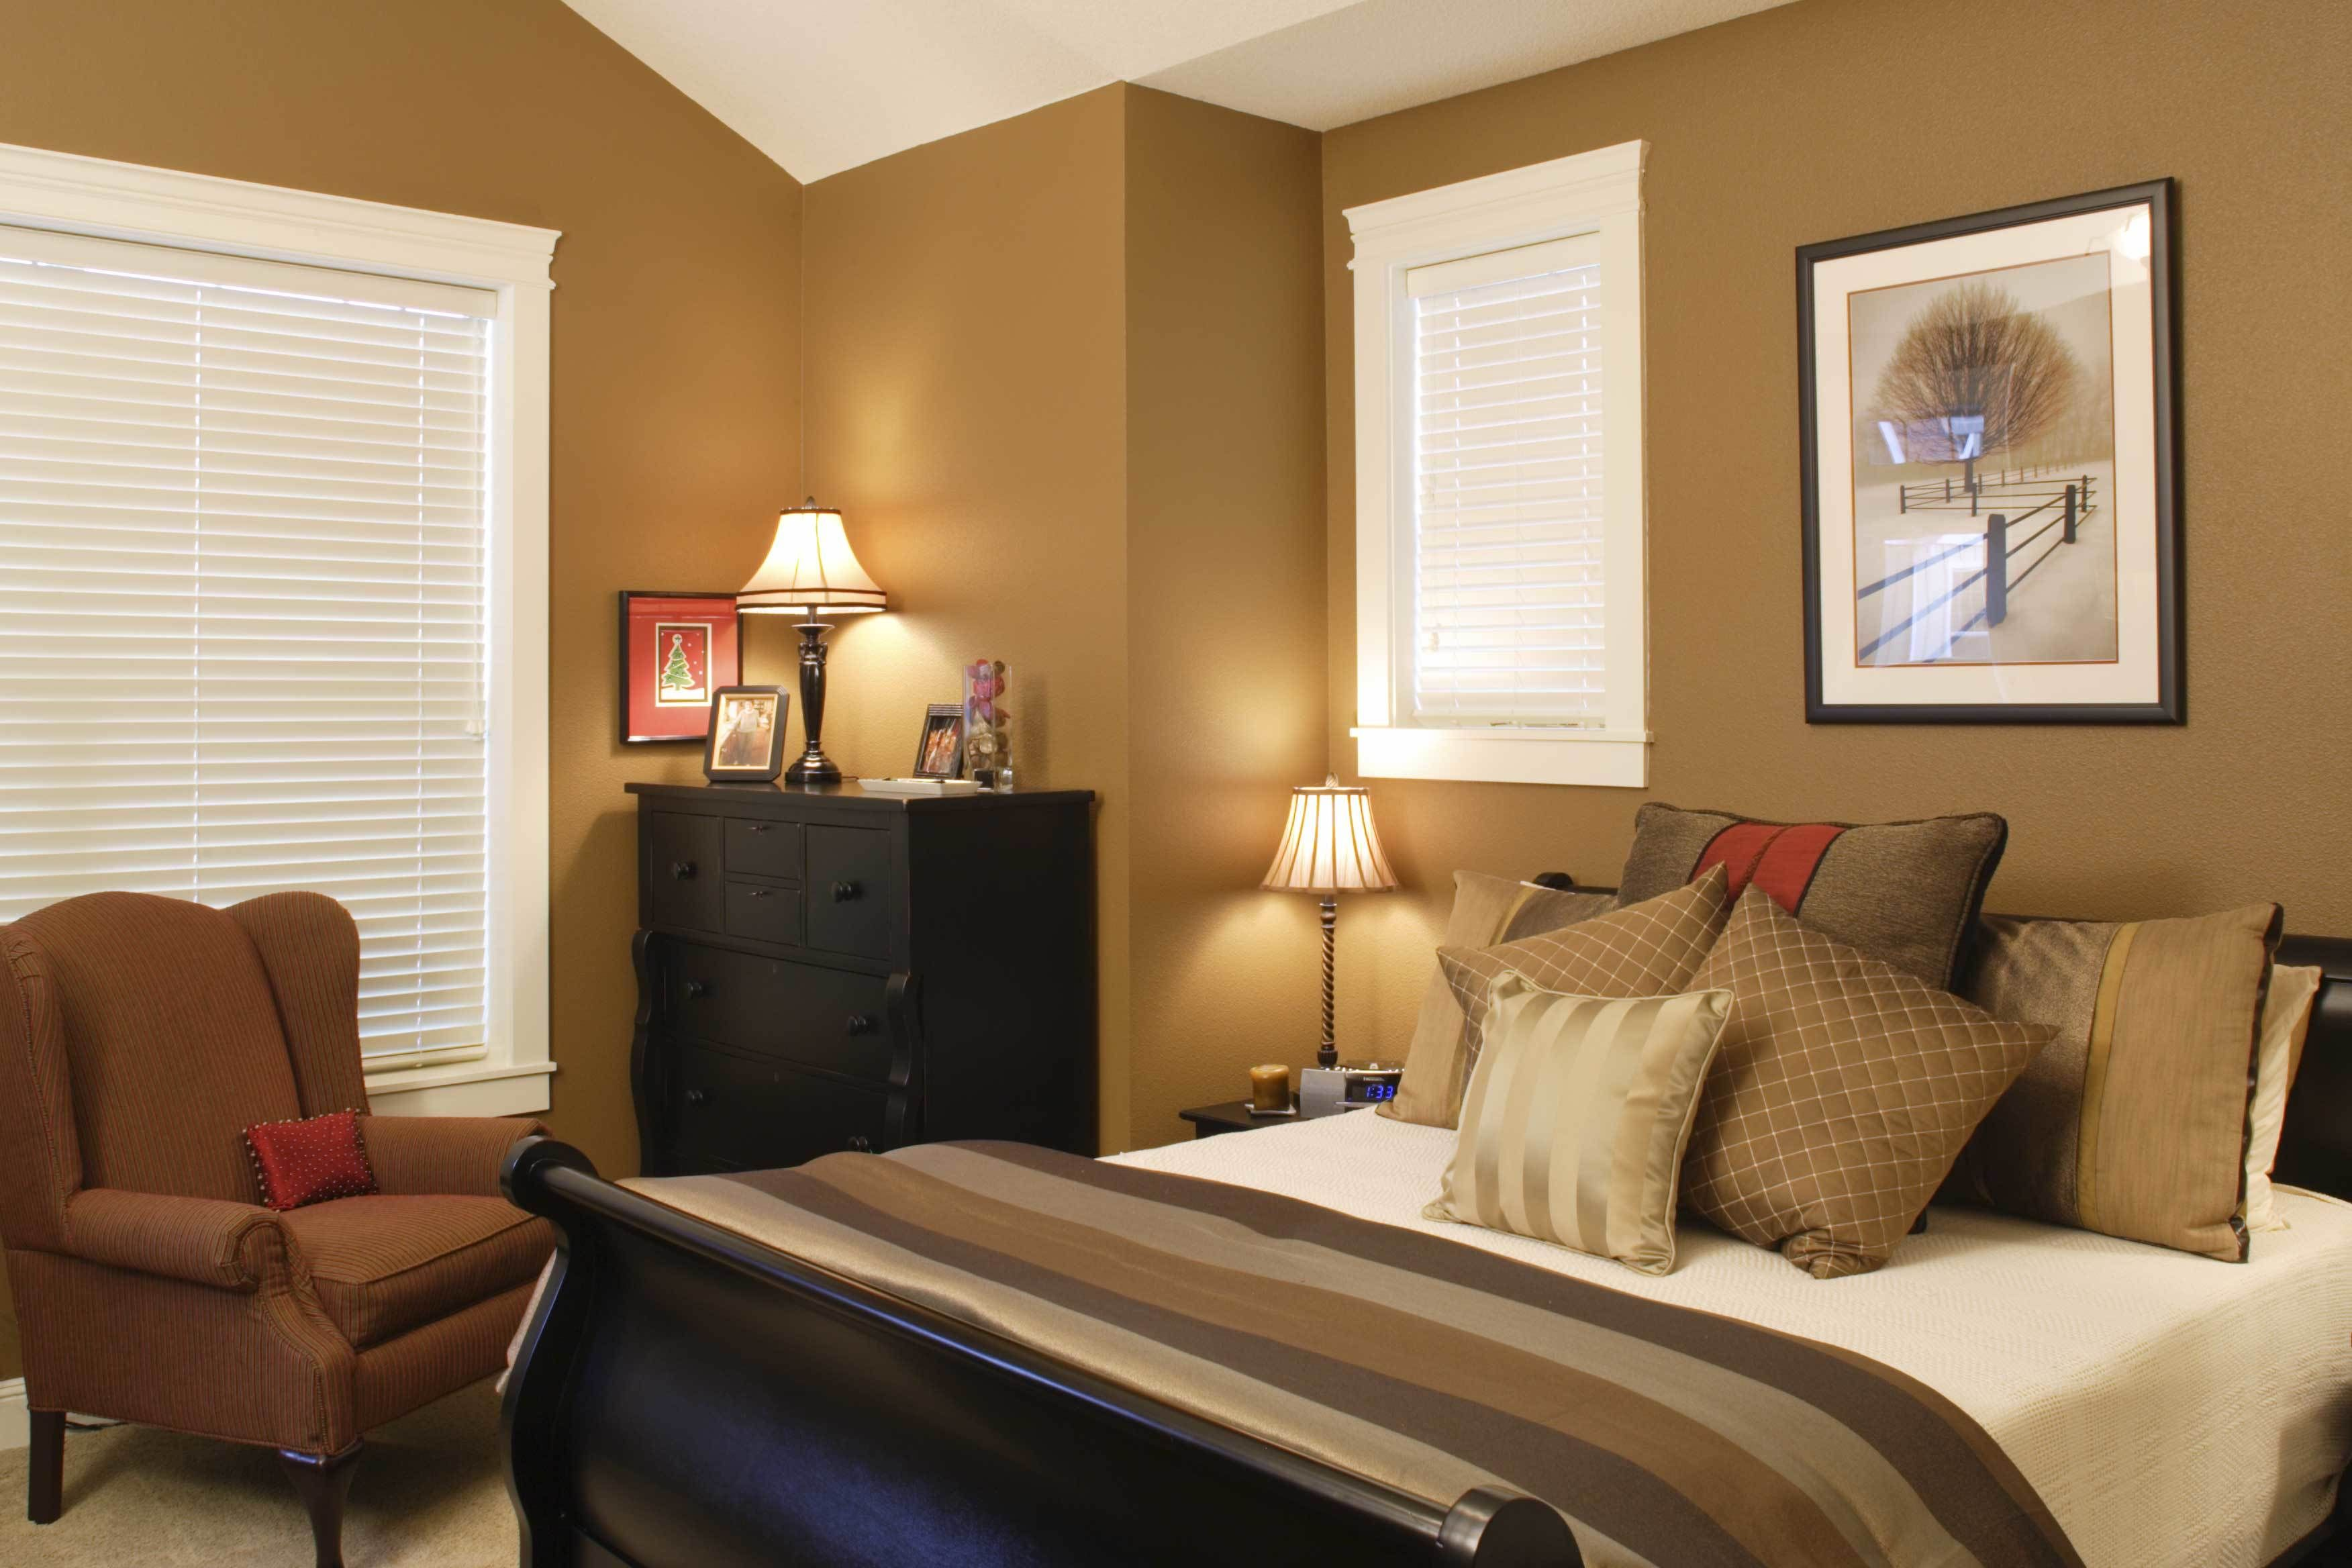 Which Paint Color Goes With Brown Furniture White And Camel Warm For Bedroom Striped